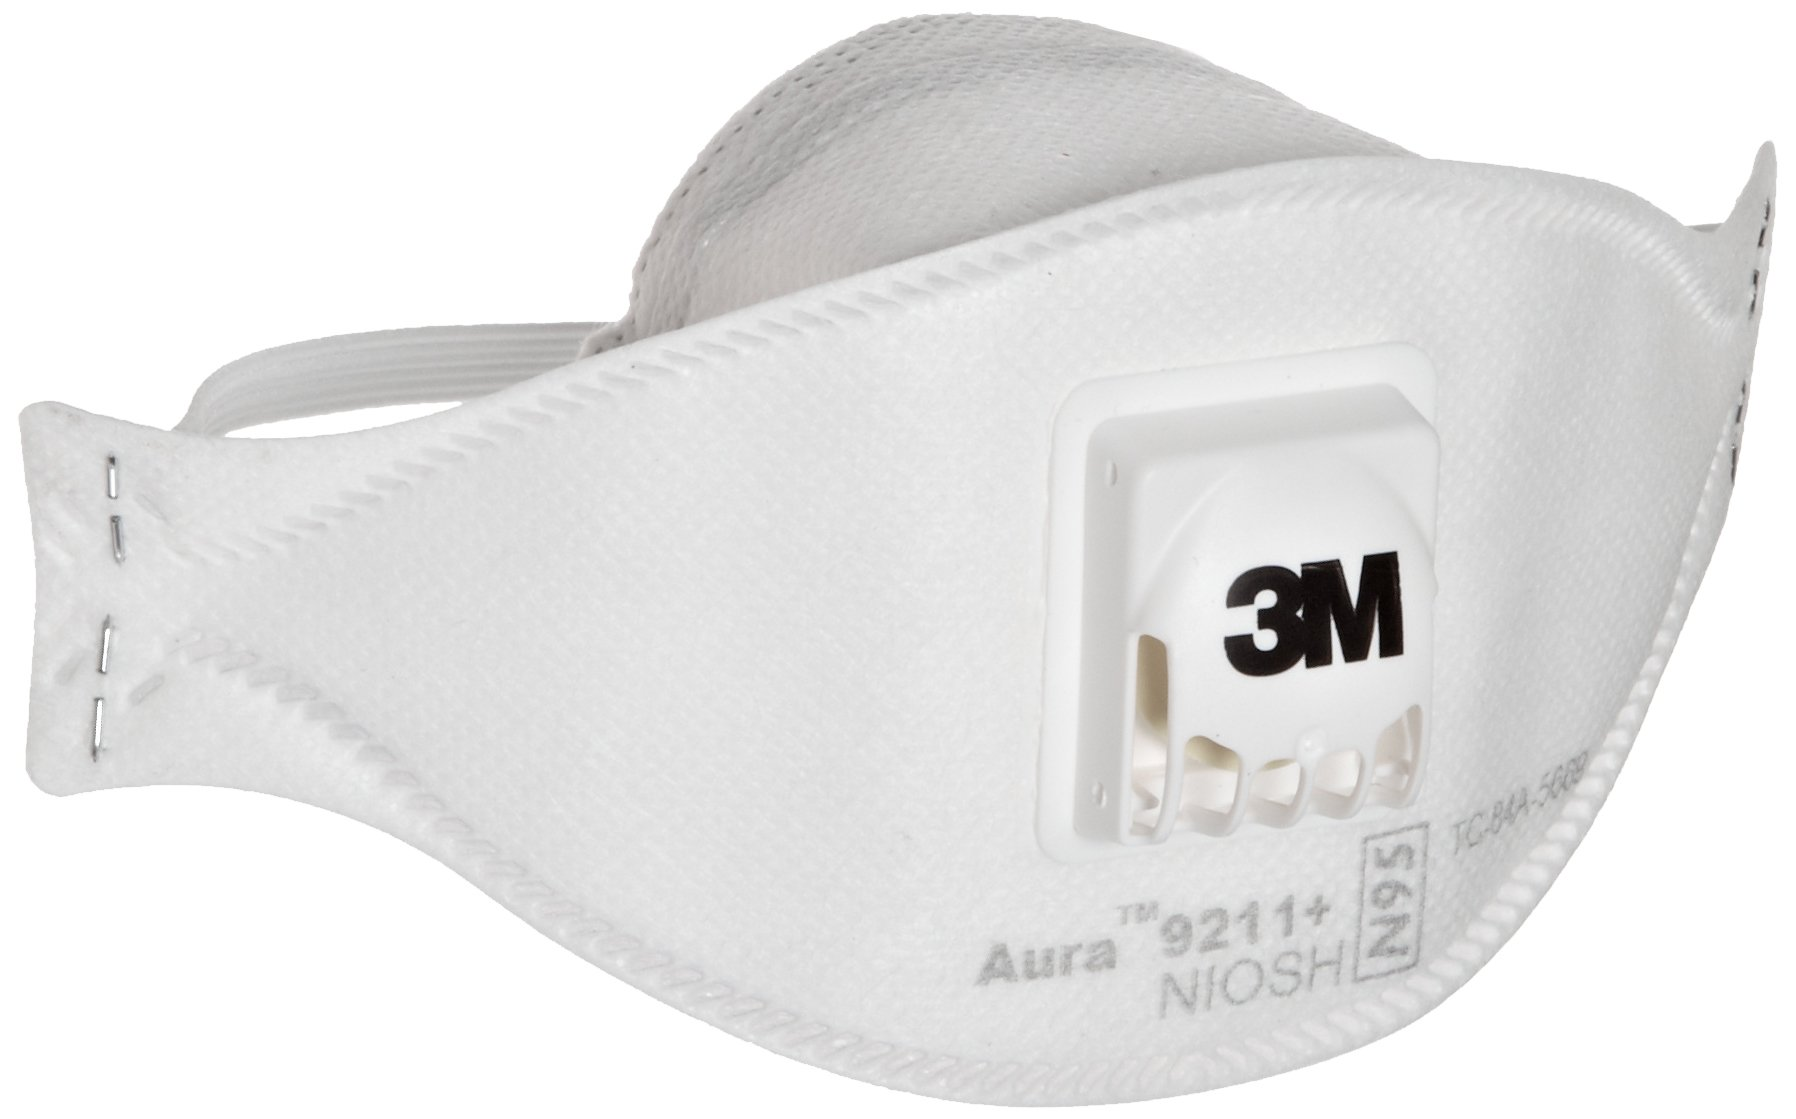 3M Aura Particulate Respirator 9211+/37193(AAD) N95, Stapled Flat Fold Disposable, Exhalation Valve (Case of 10)